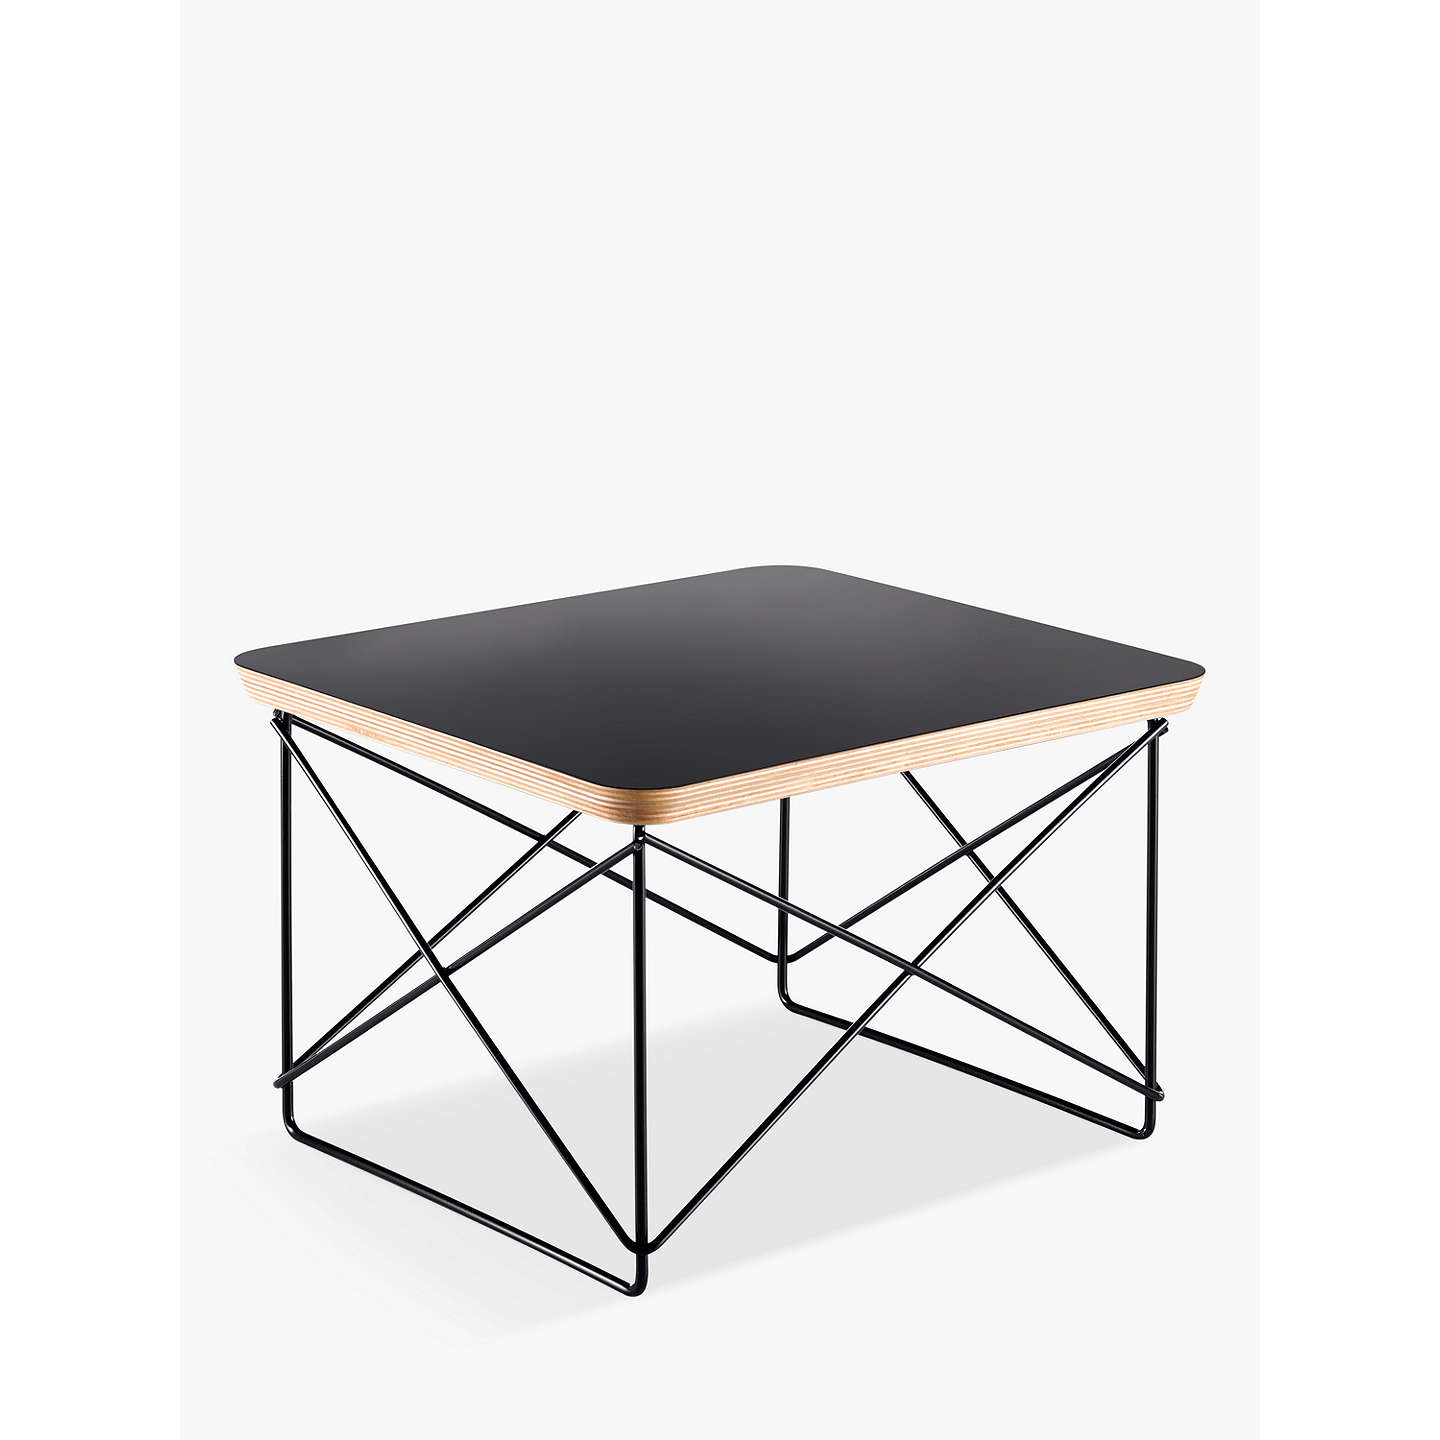 Vitra eames ltr occasional side table black at john lewis buyvitra eames ltr occasional side table black online at johnlewis greentooth Gallery